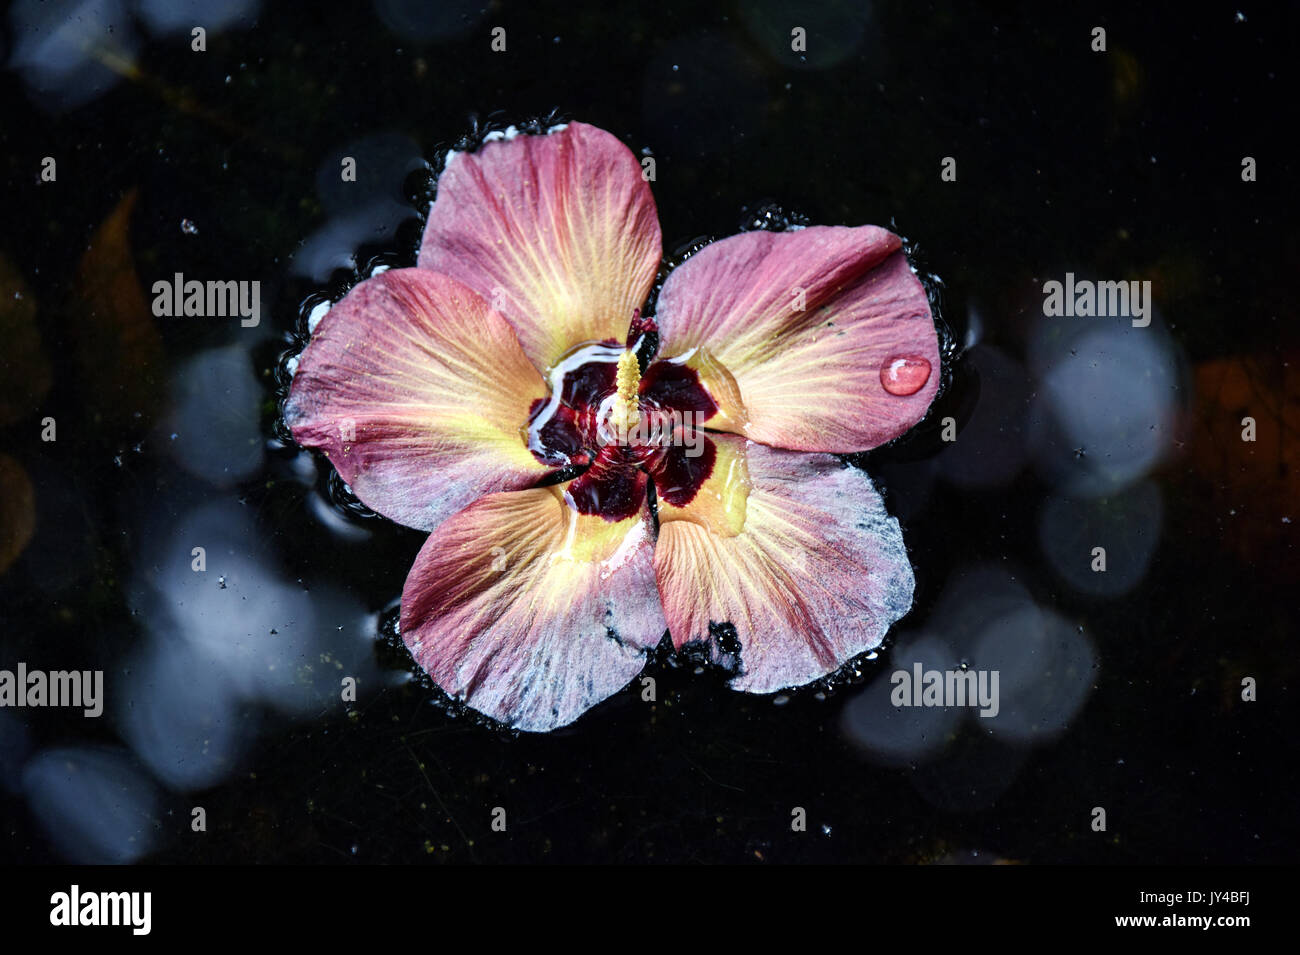 Hibiscus Flower In Water Stock Photo 154375526 Alamy